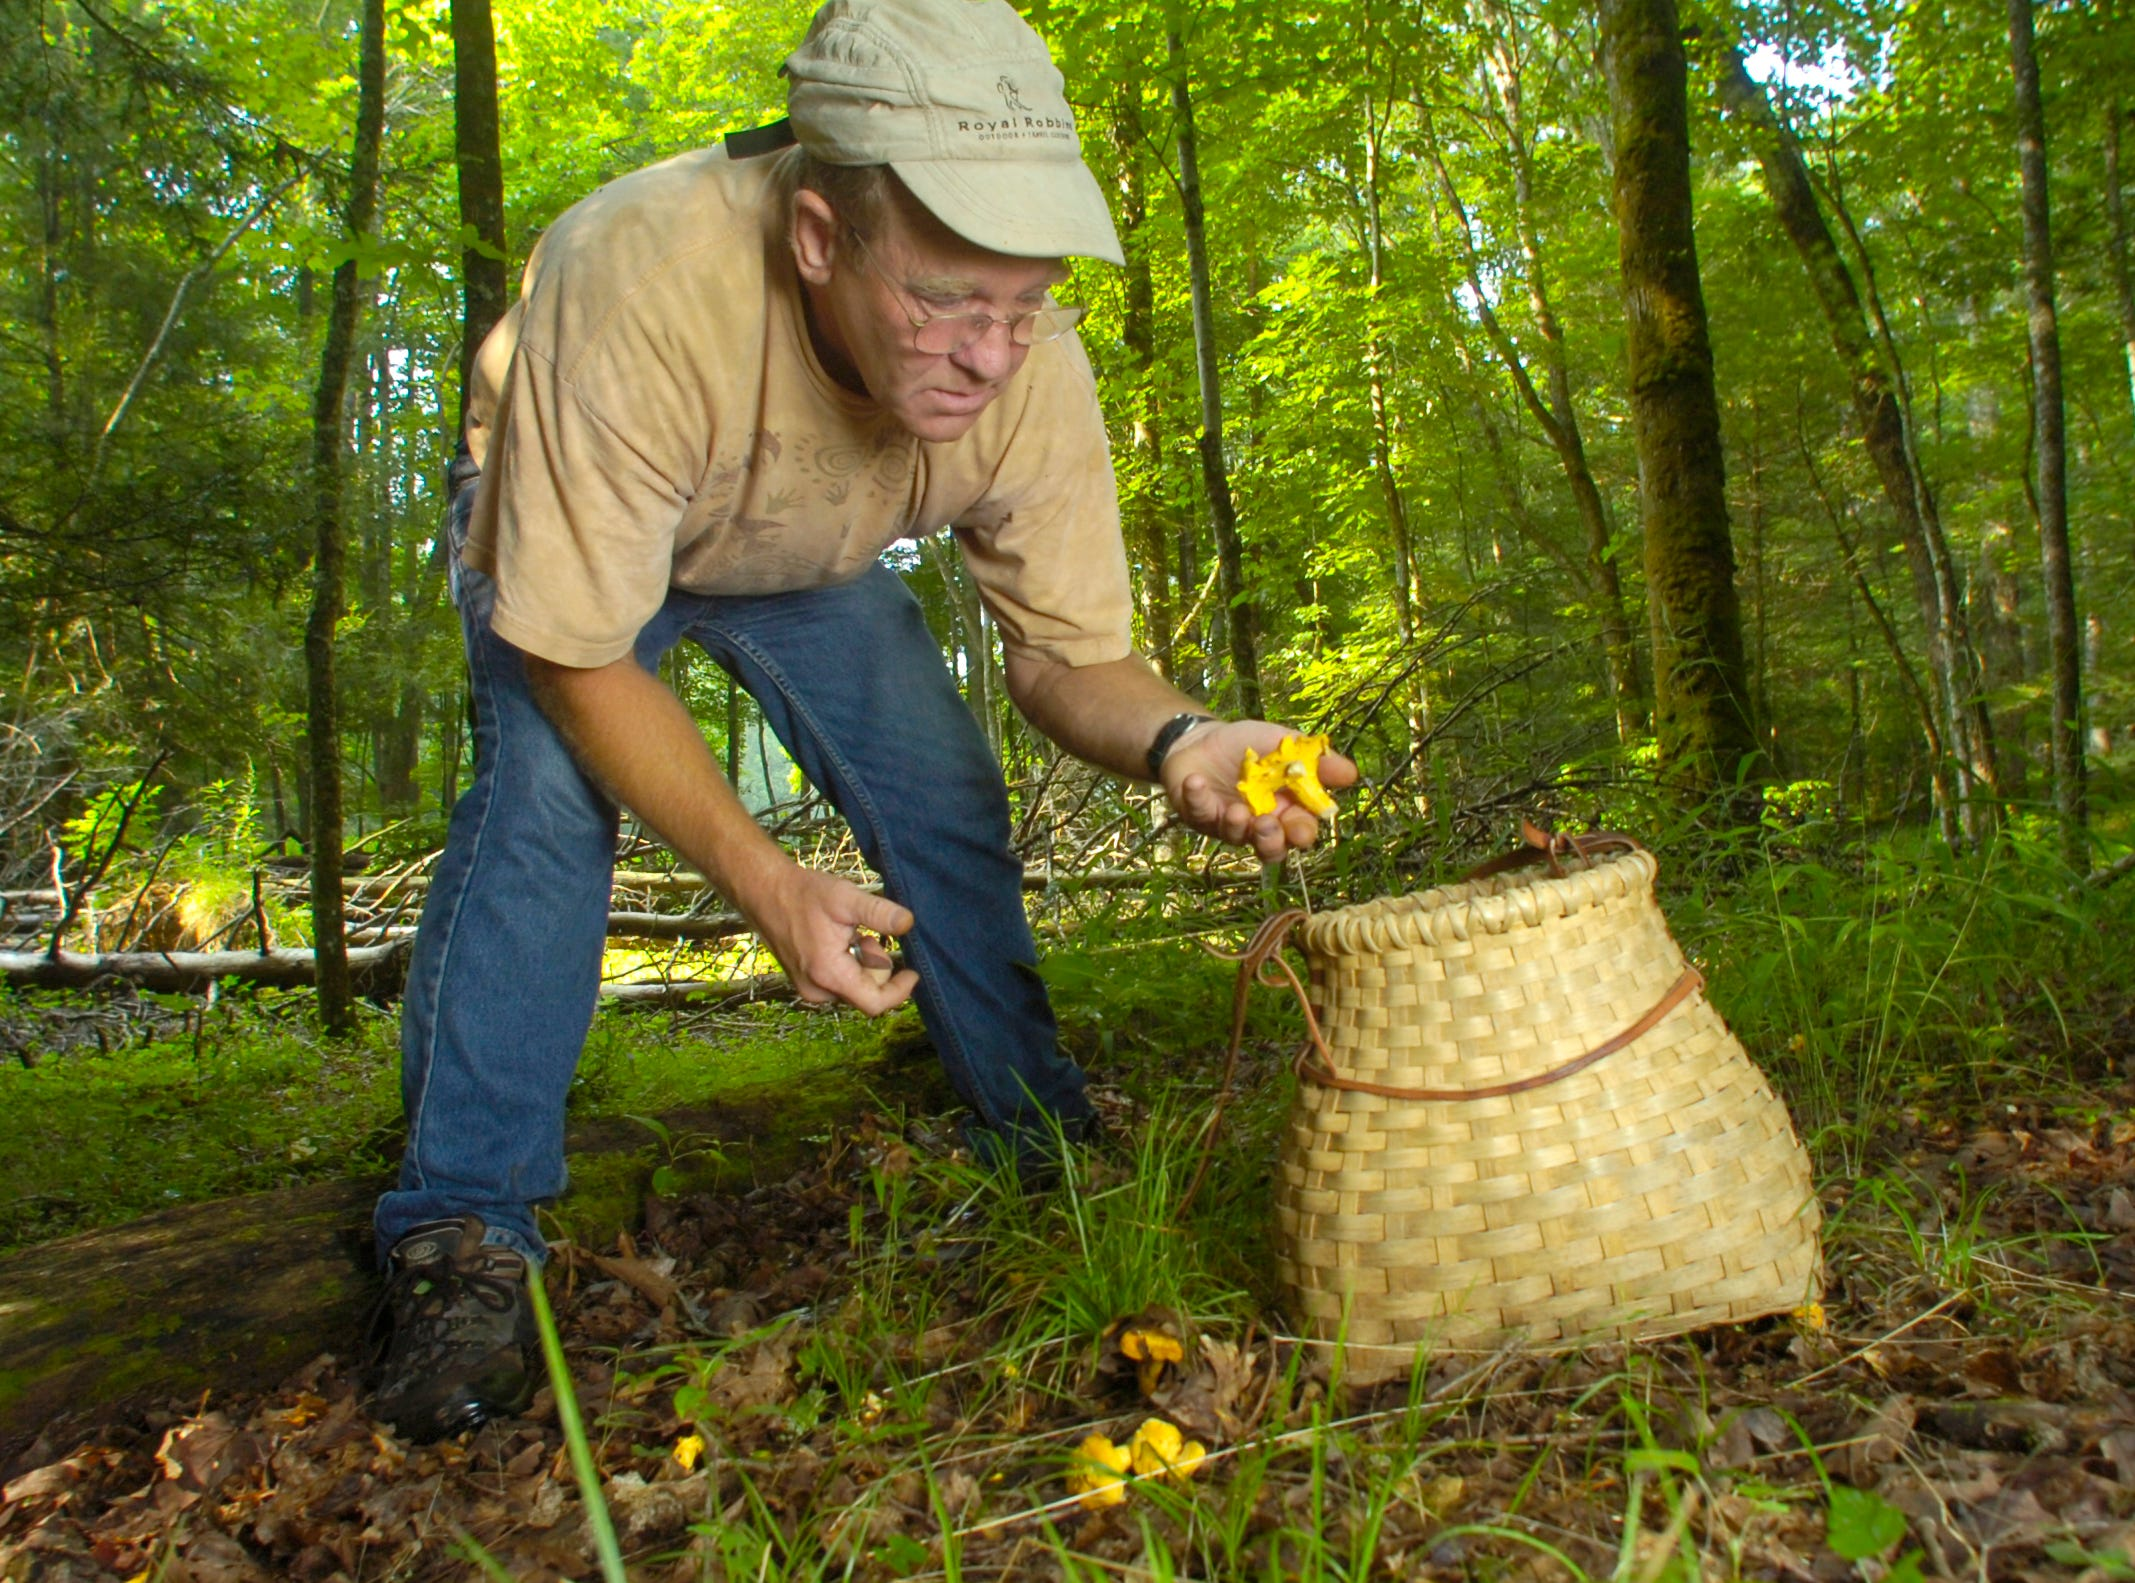 """Naturalist Whitey Hitchcock collects chanterelles from the forest floor Tuesday in Cades Cove in the Great Smoky Mountains National Park. The choice, edible fungi are prized by chefs but it took Hitchcock a while to appreciate them. """"When I first starting eating them, I didn't like them, but they grew on me. They go real good with gamey food like elk and wild pig,"""" he said."""